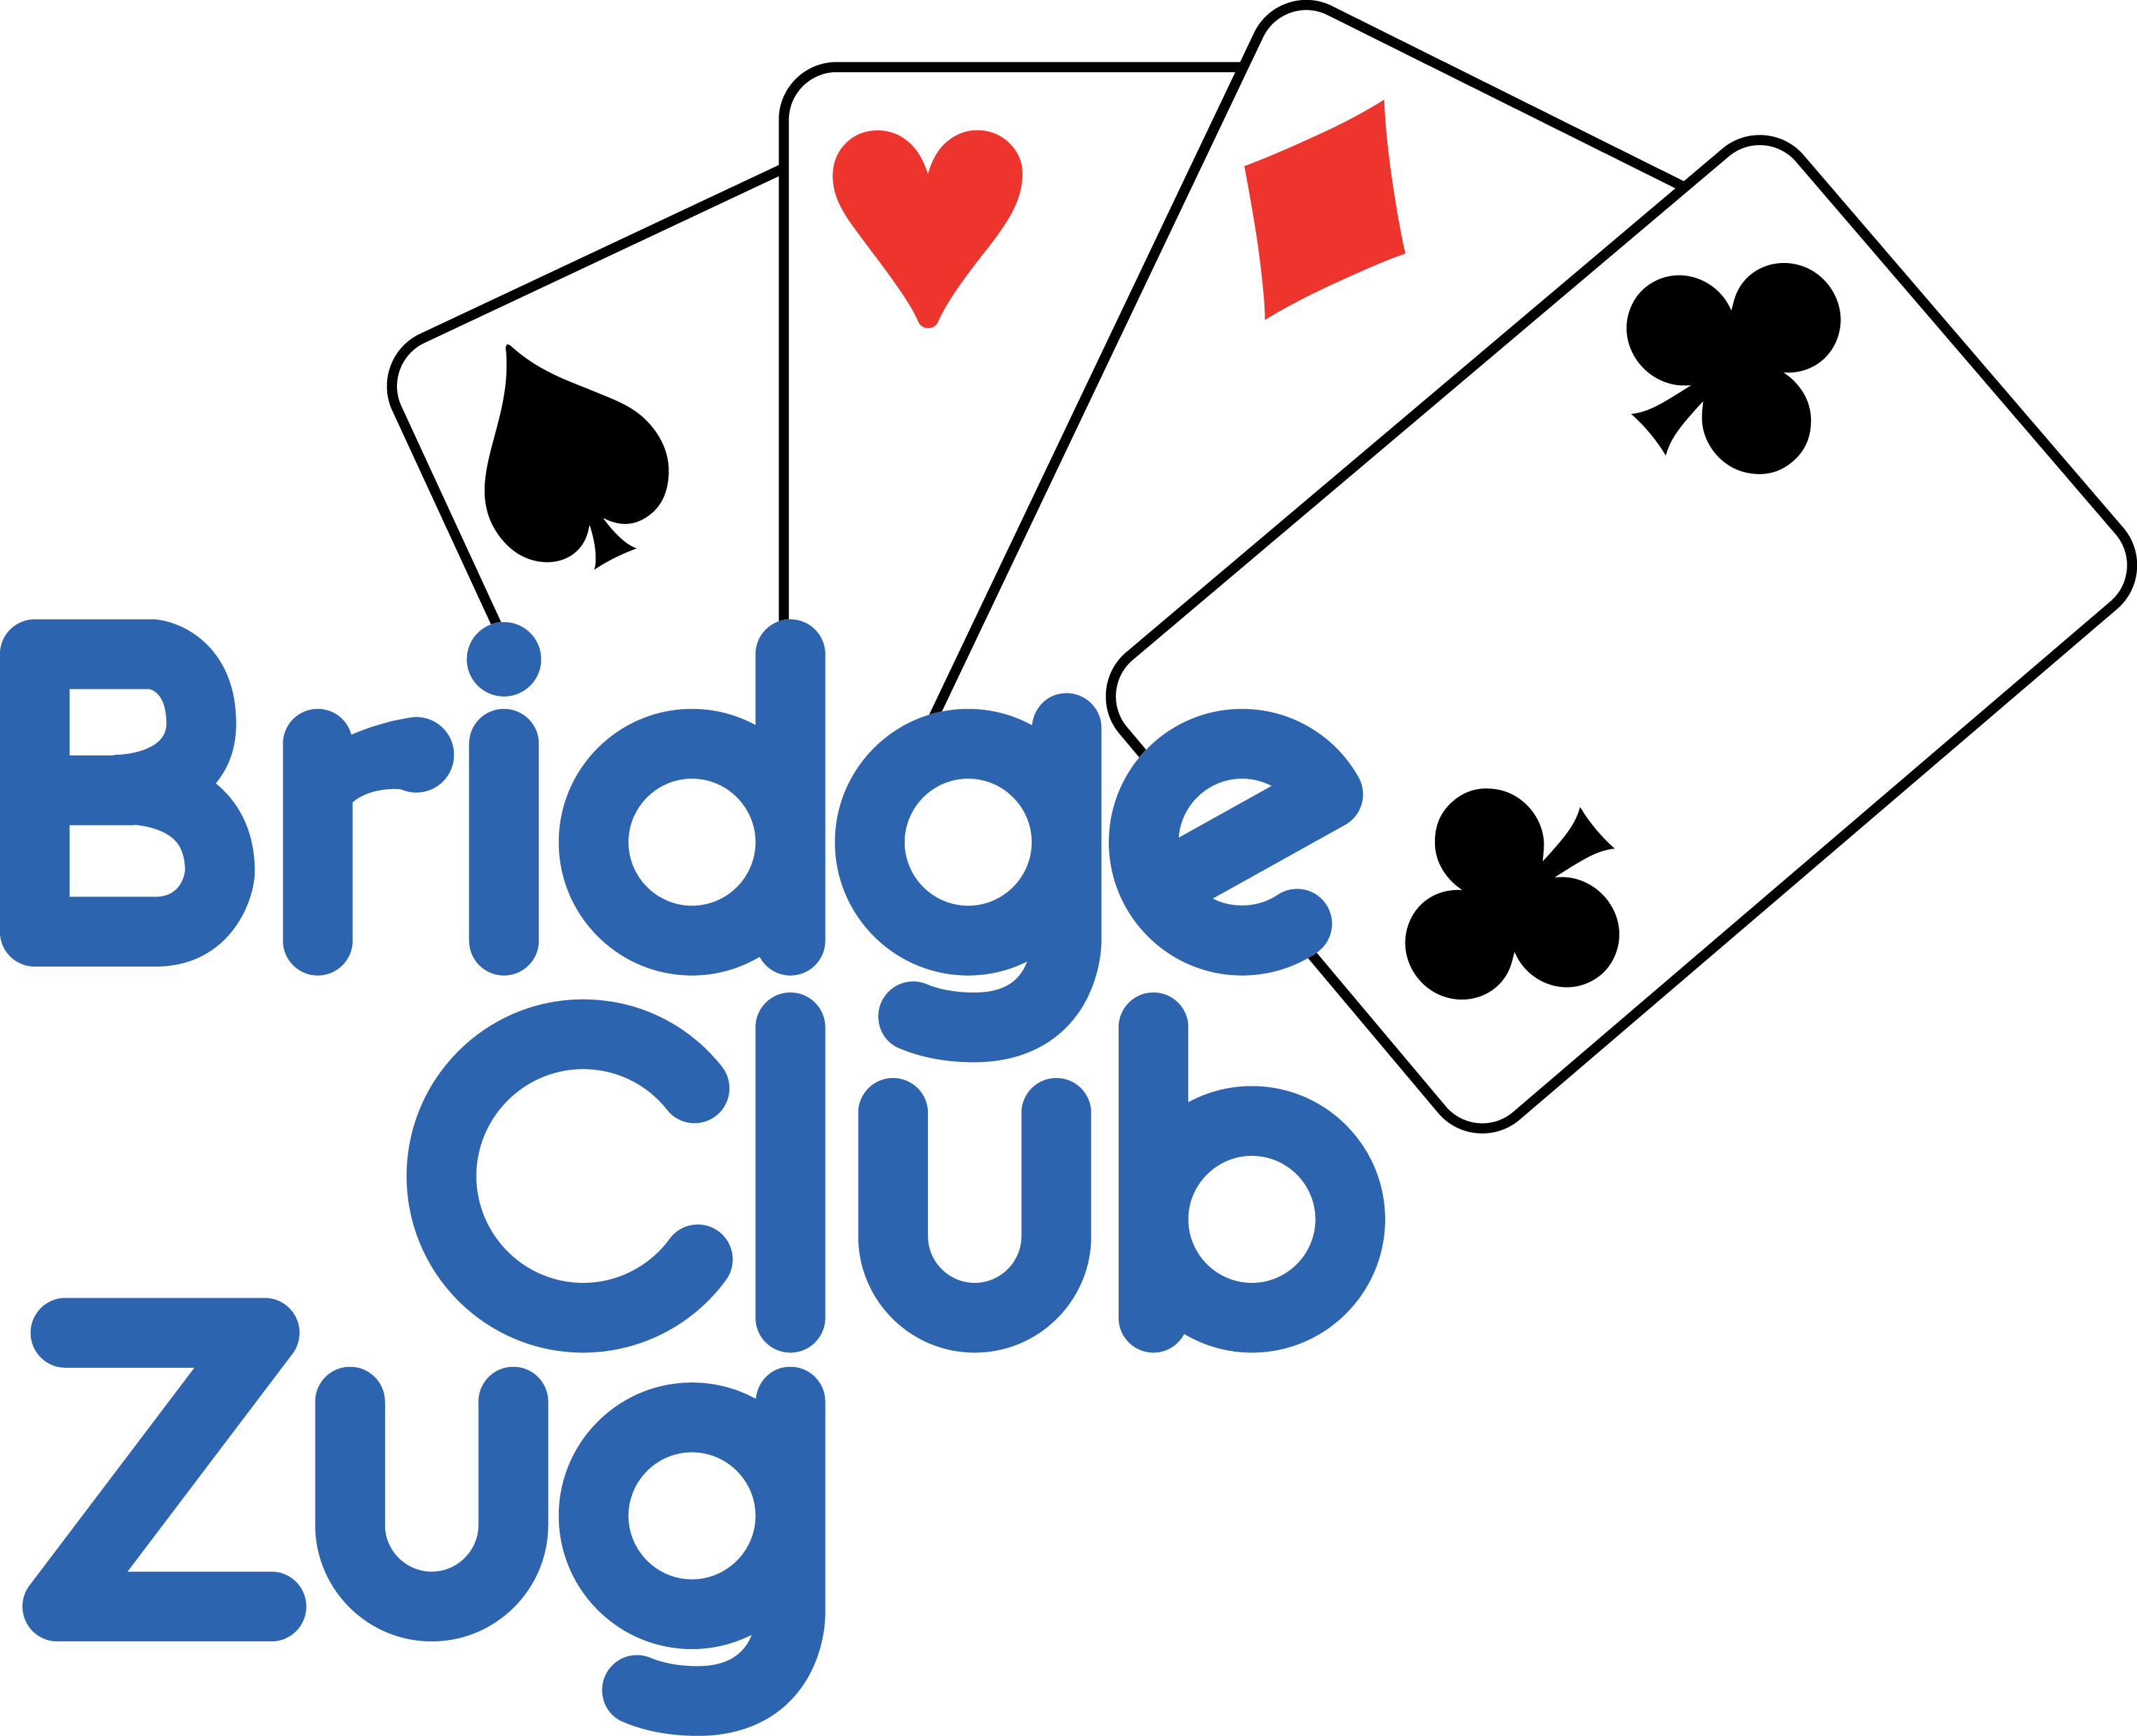 Bridge Club Zug